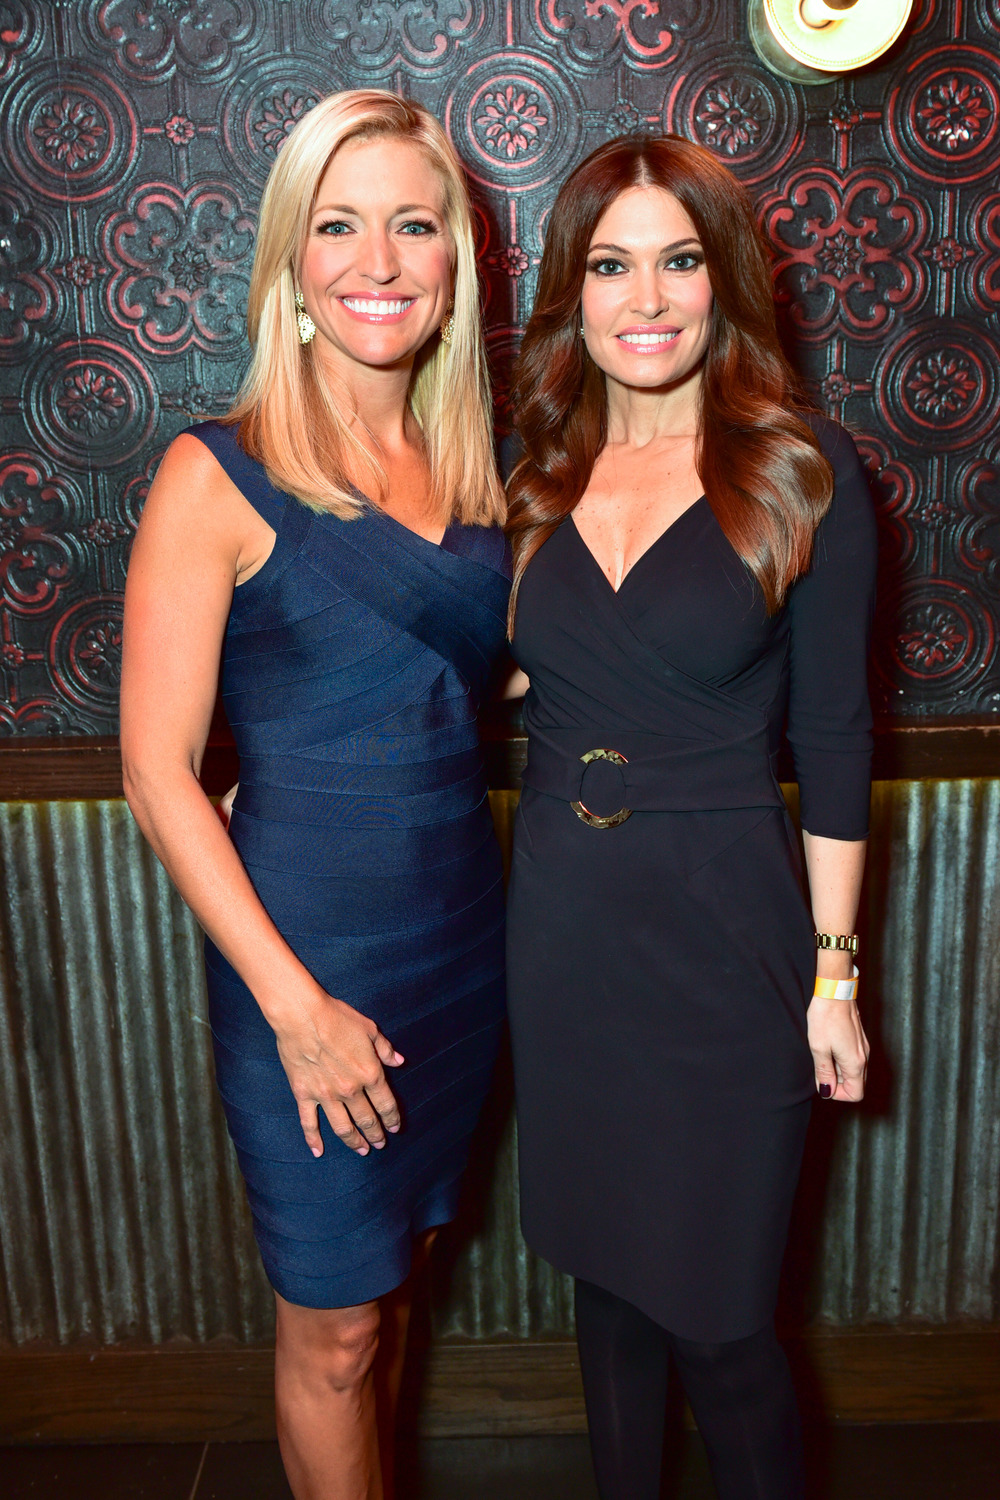 Kimberly Guilfoyle and Ainsley Earhardt